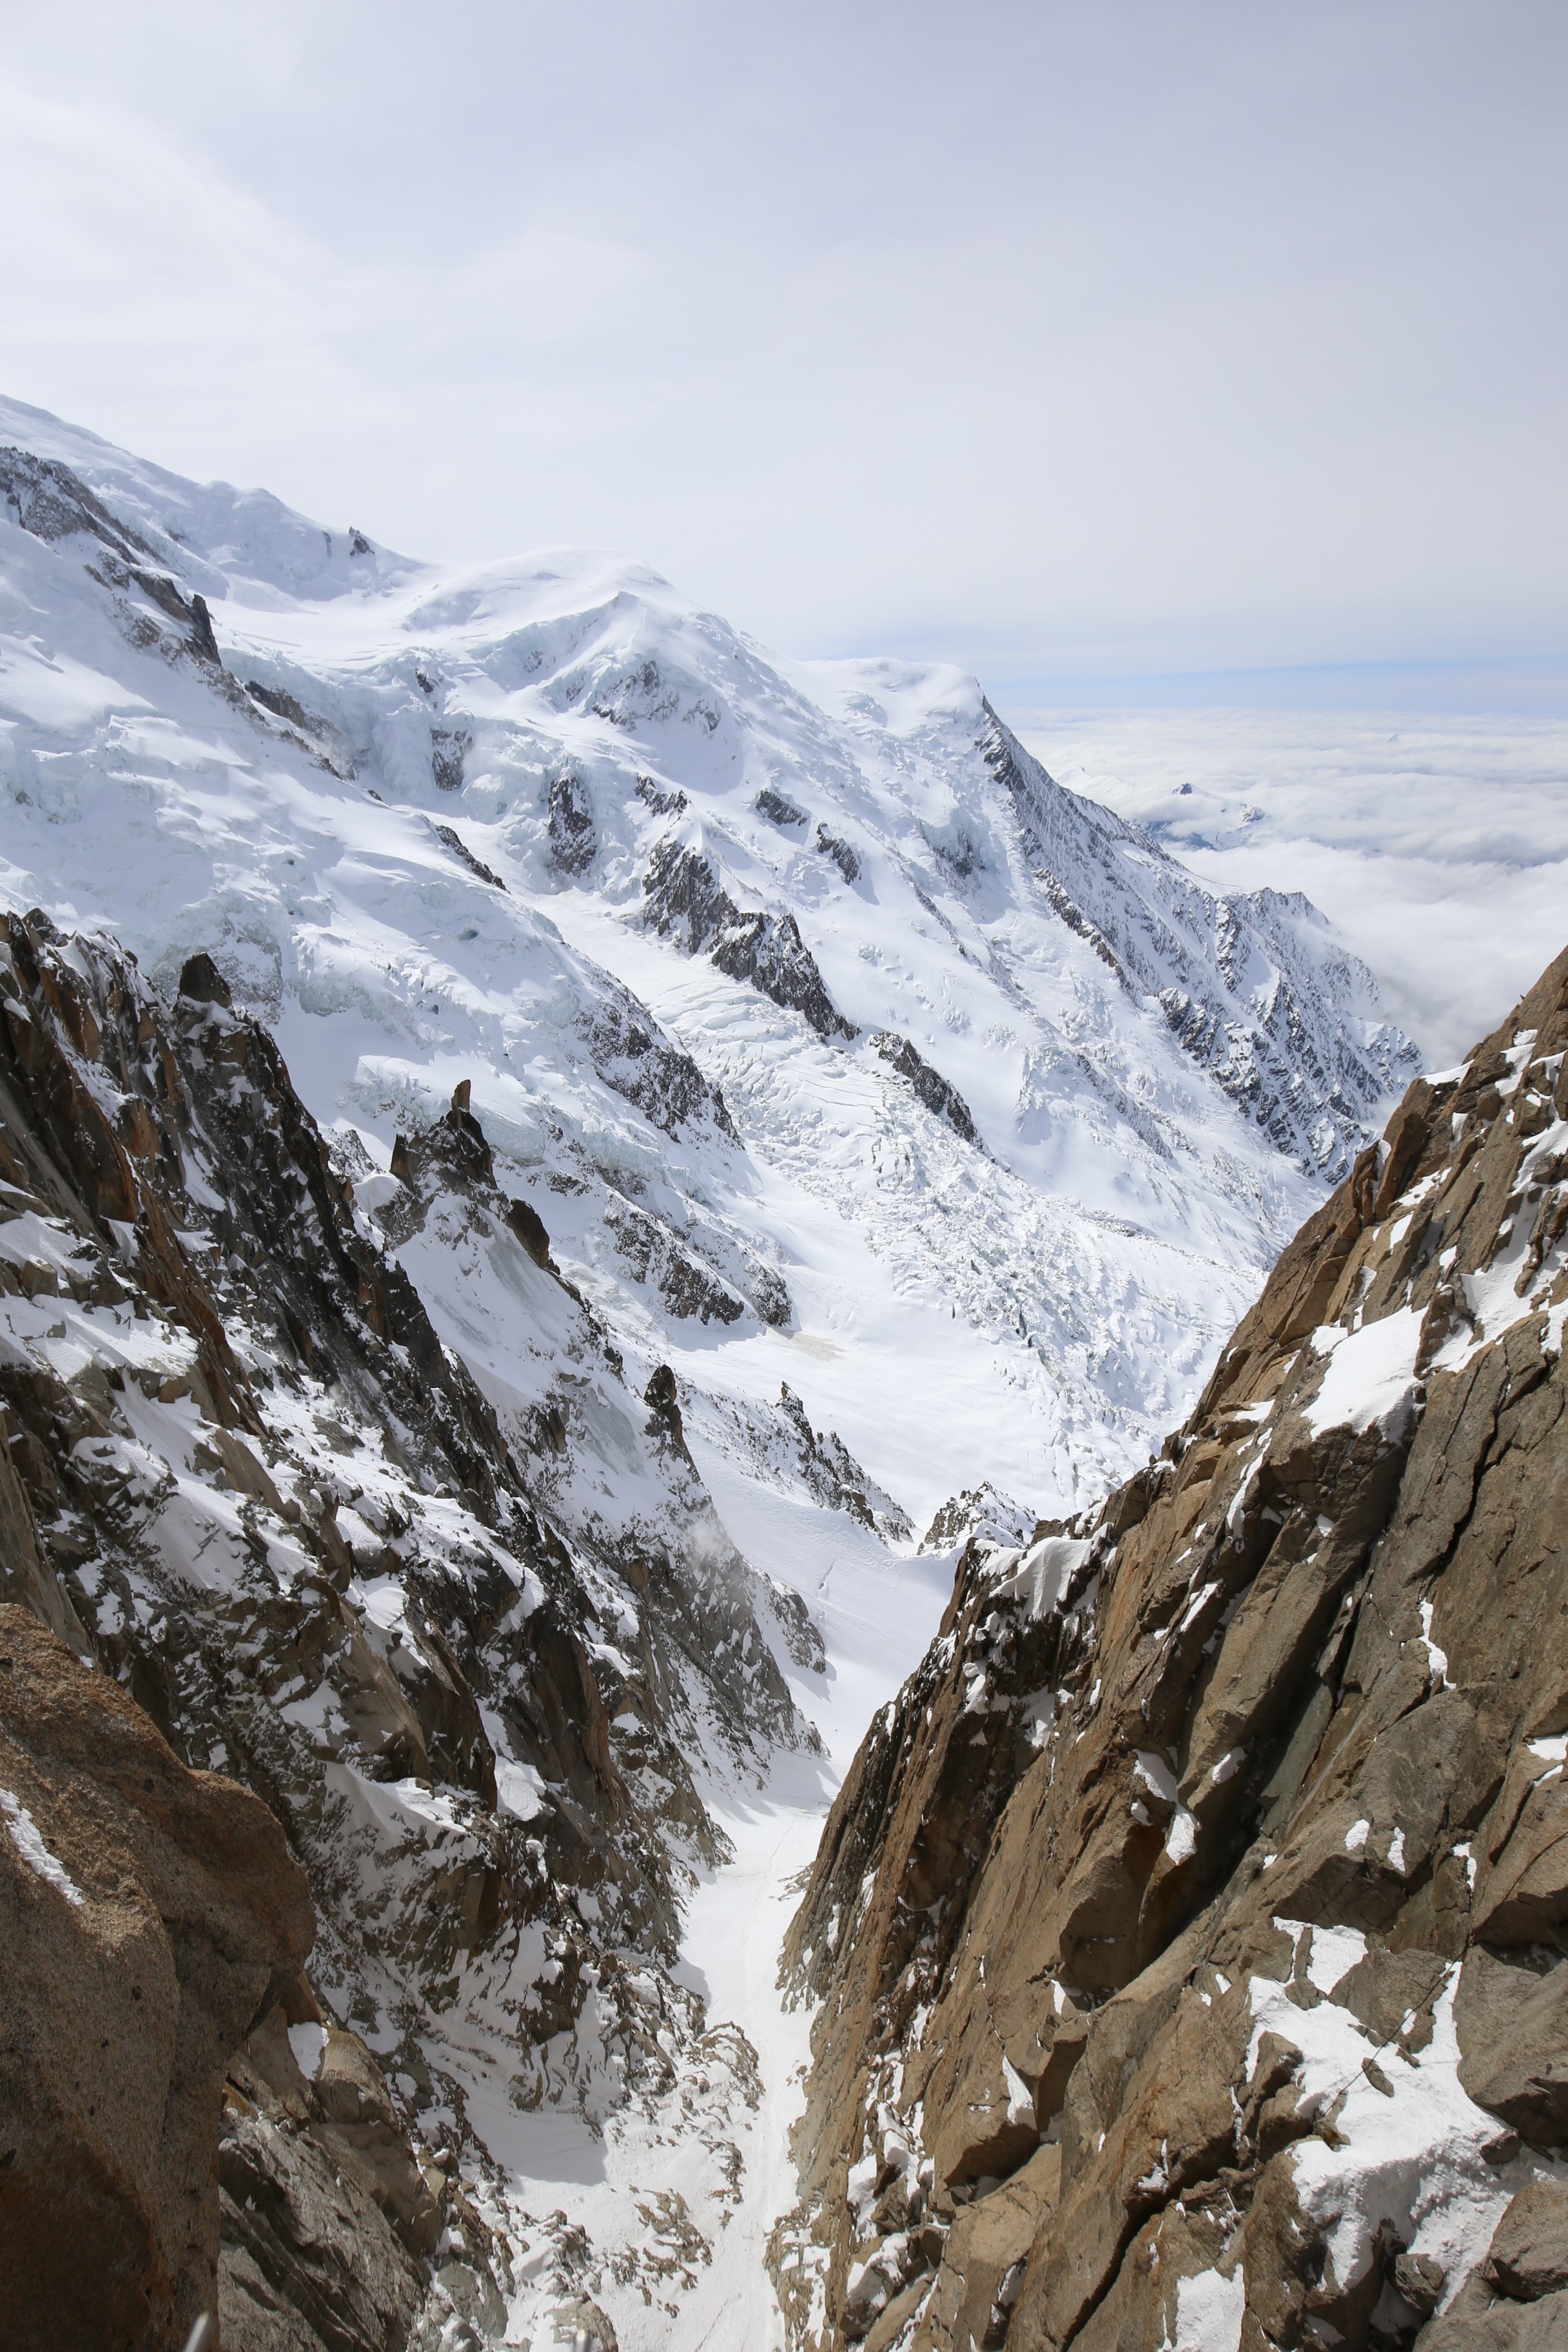 The breathtaking views from Mont Blanc Aiguille du Midi.